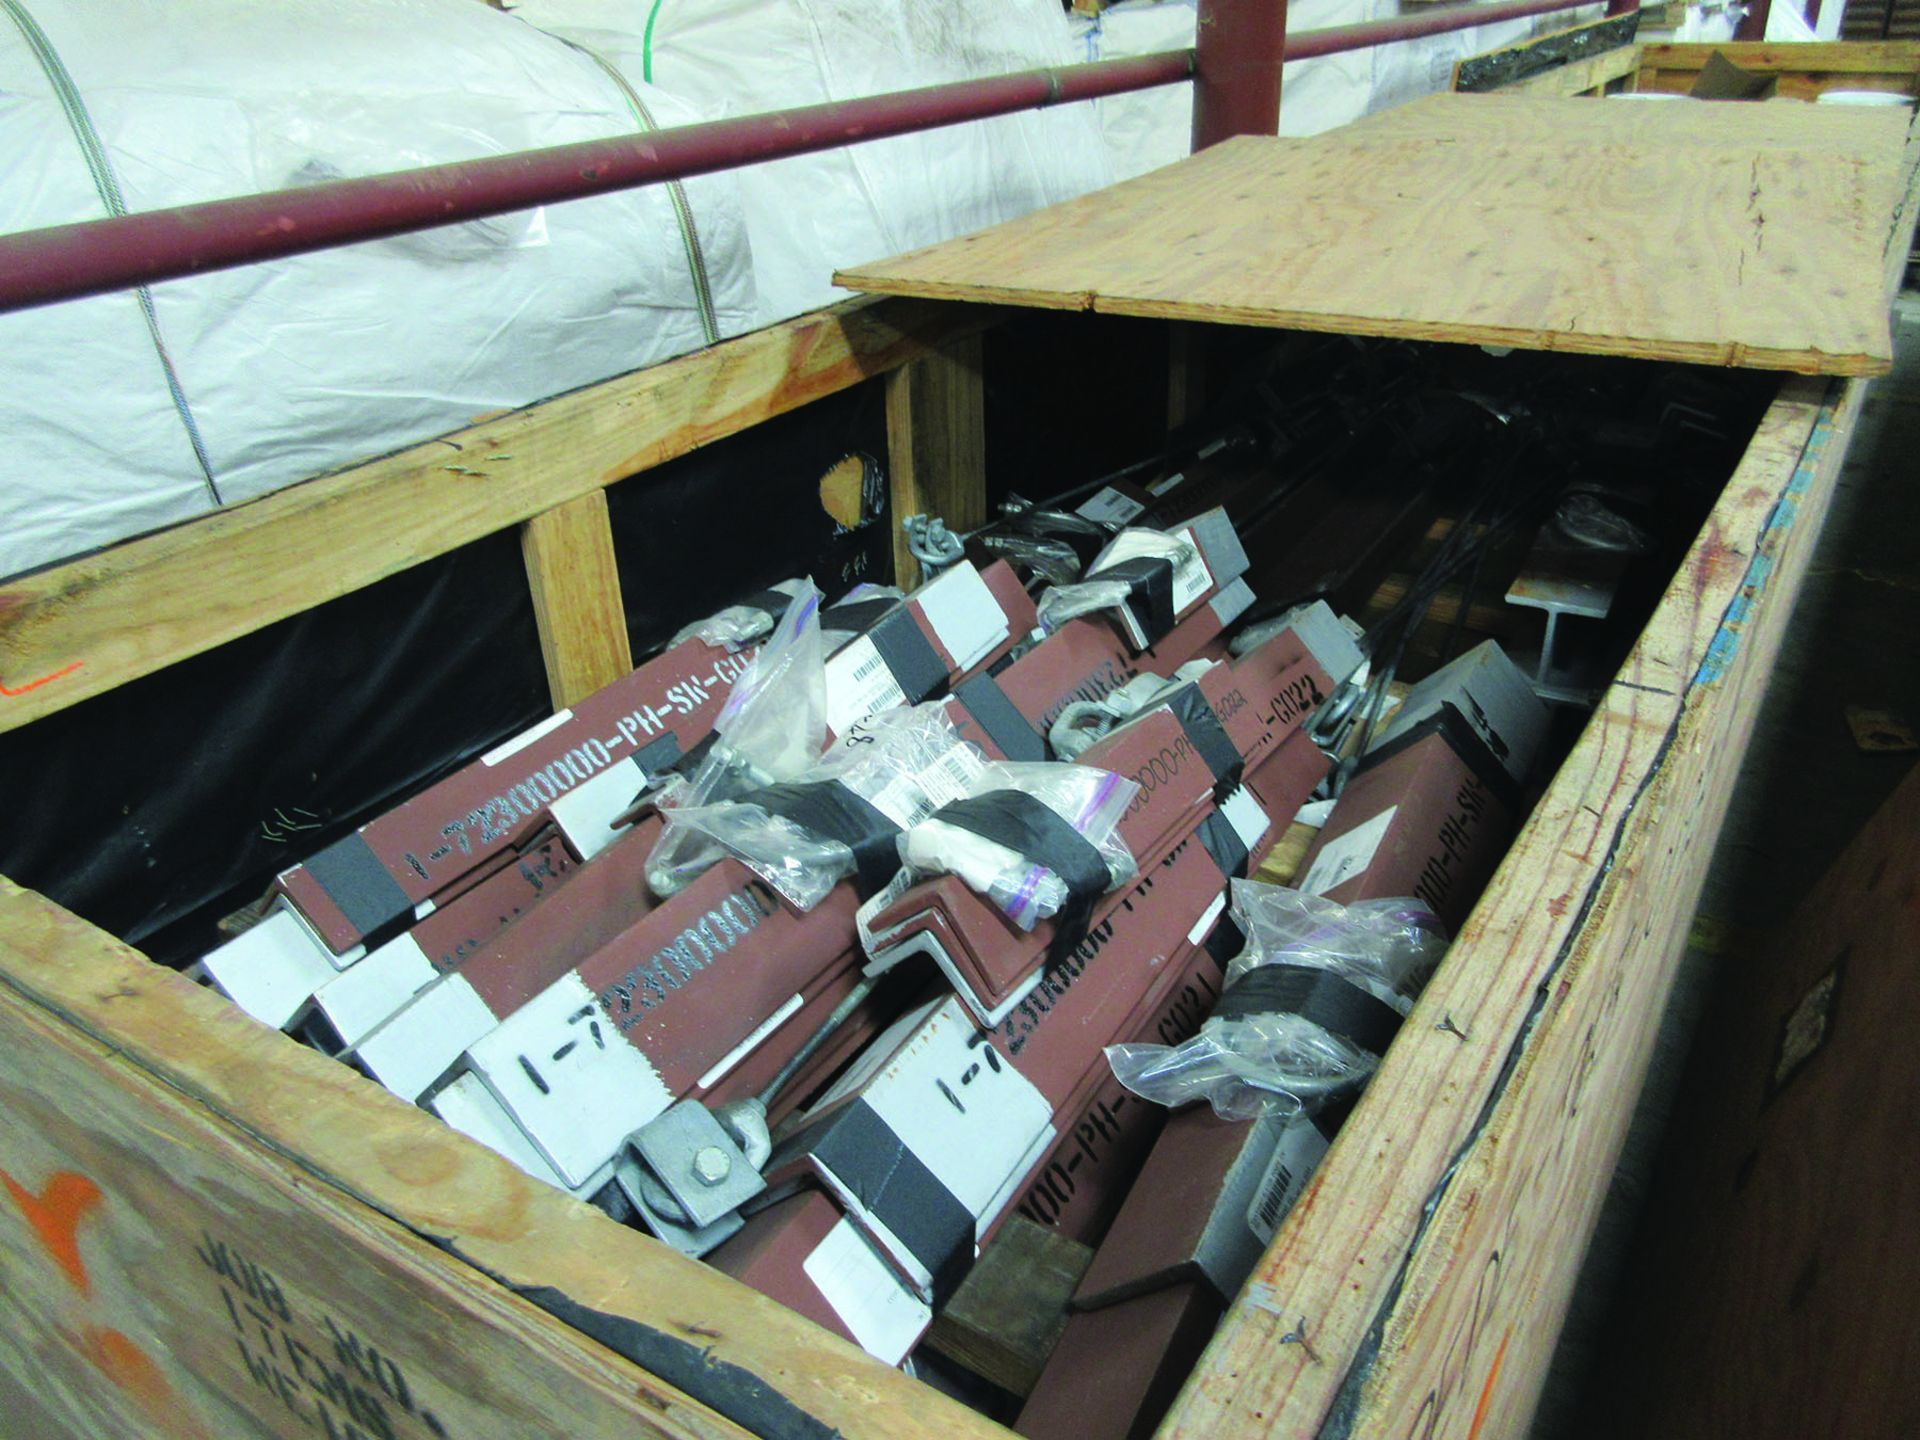 LARGE LOT OF STRUCTURAL STEEL & SPRING CANS, ANGLE IRON, PLATE BRACKETS, BRACING, GRID C5 - Image 5 of 21